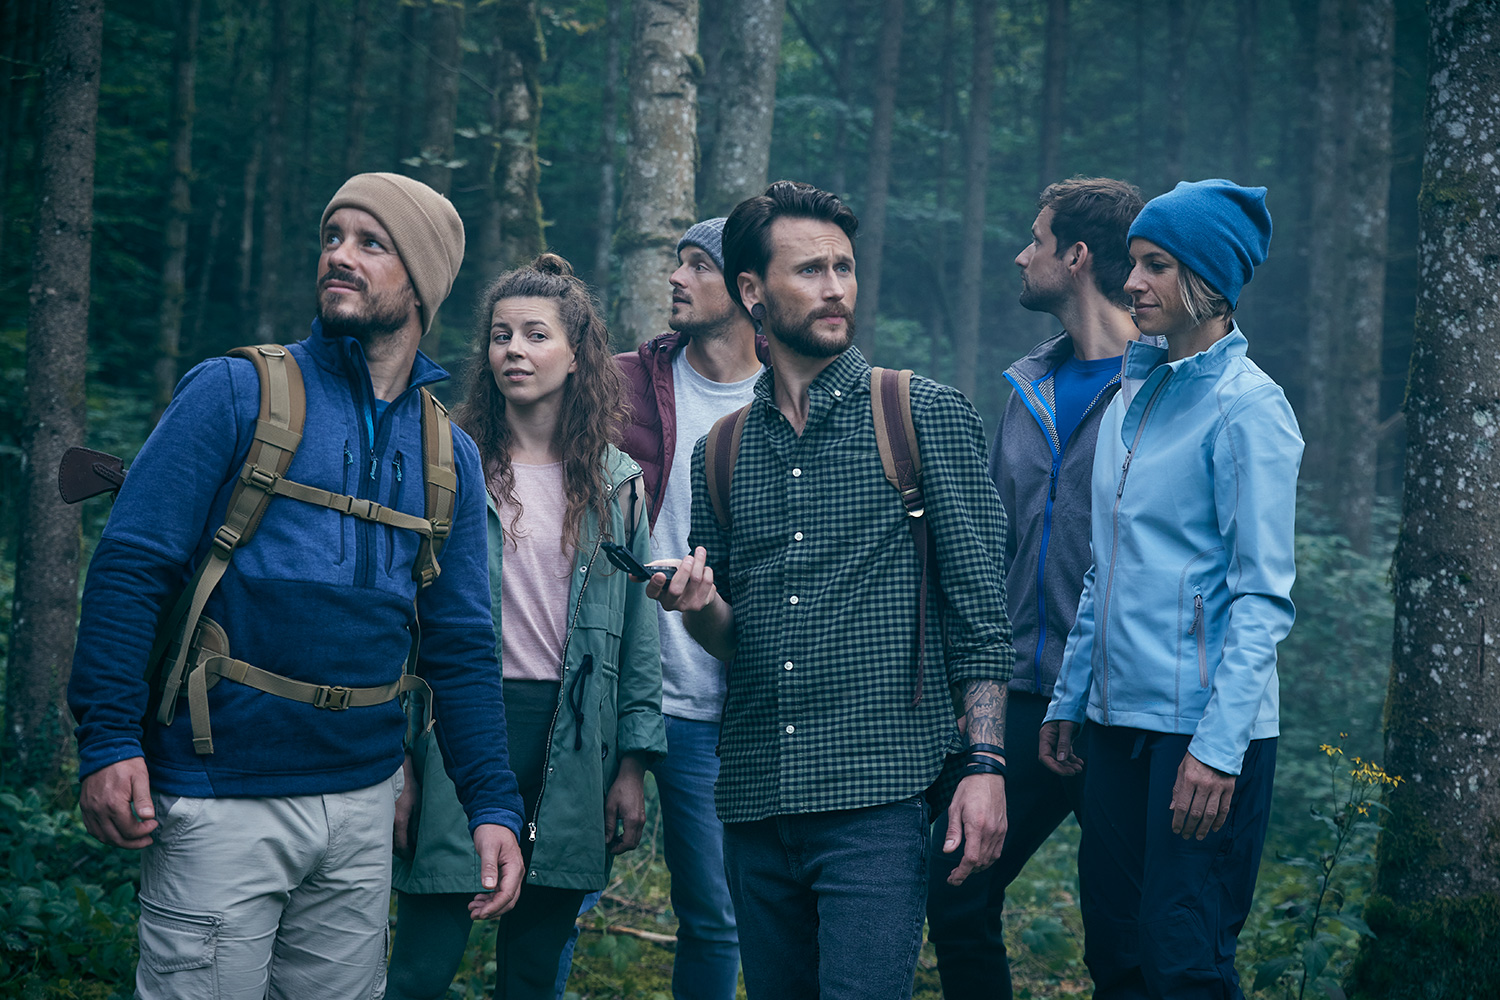 Five friends in the woods navigating with a compass